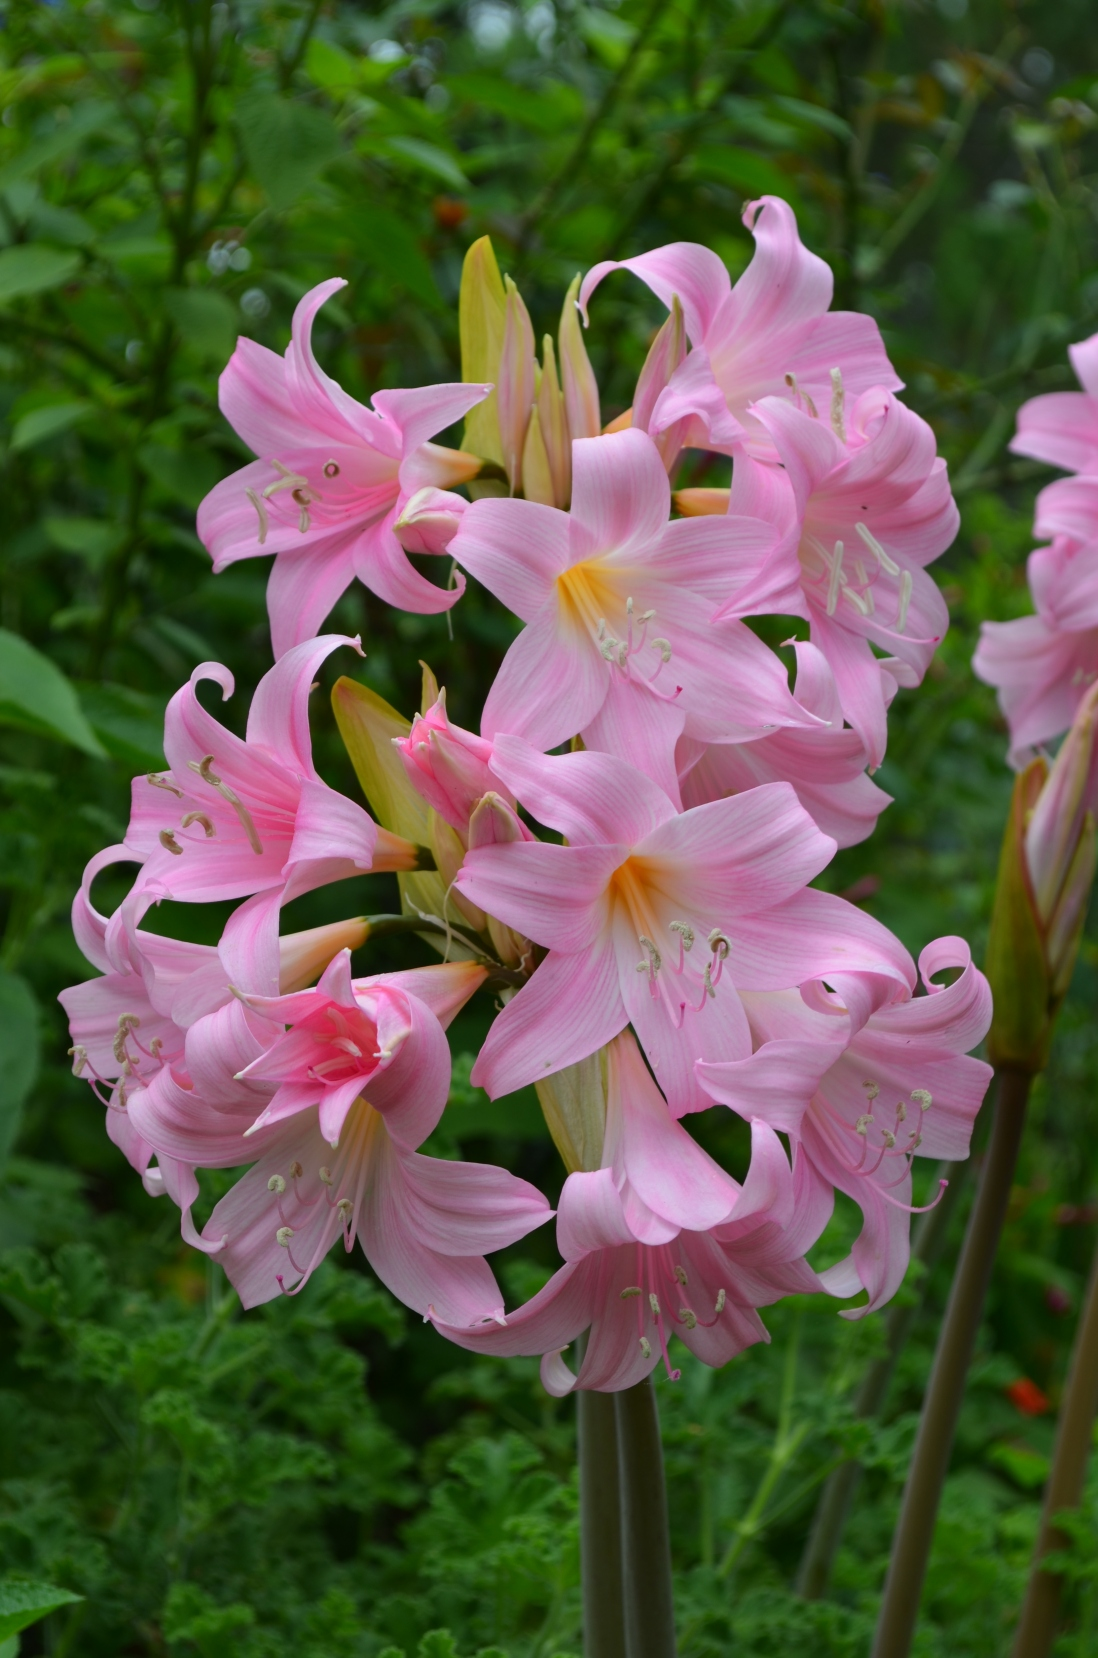 A close up of the pink bloom of the Belladonna lily